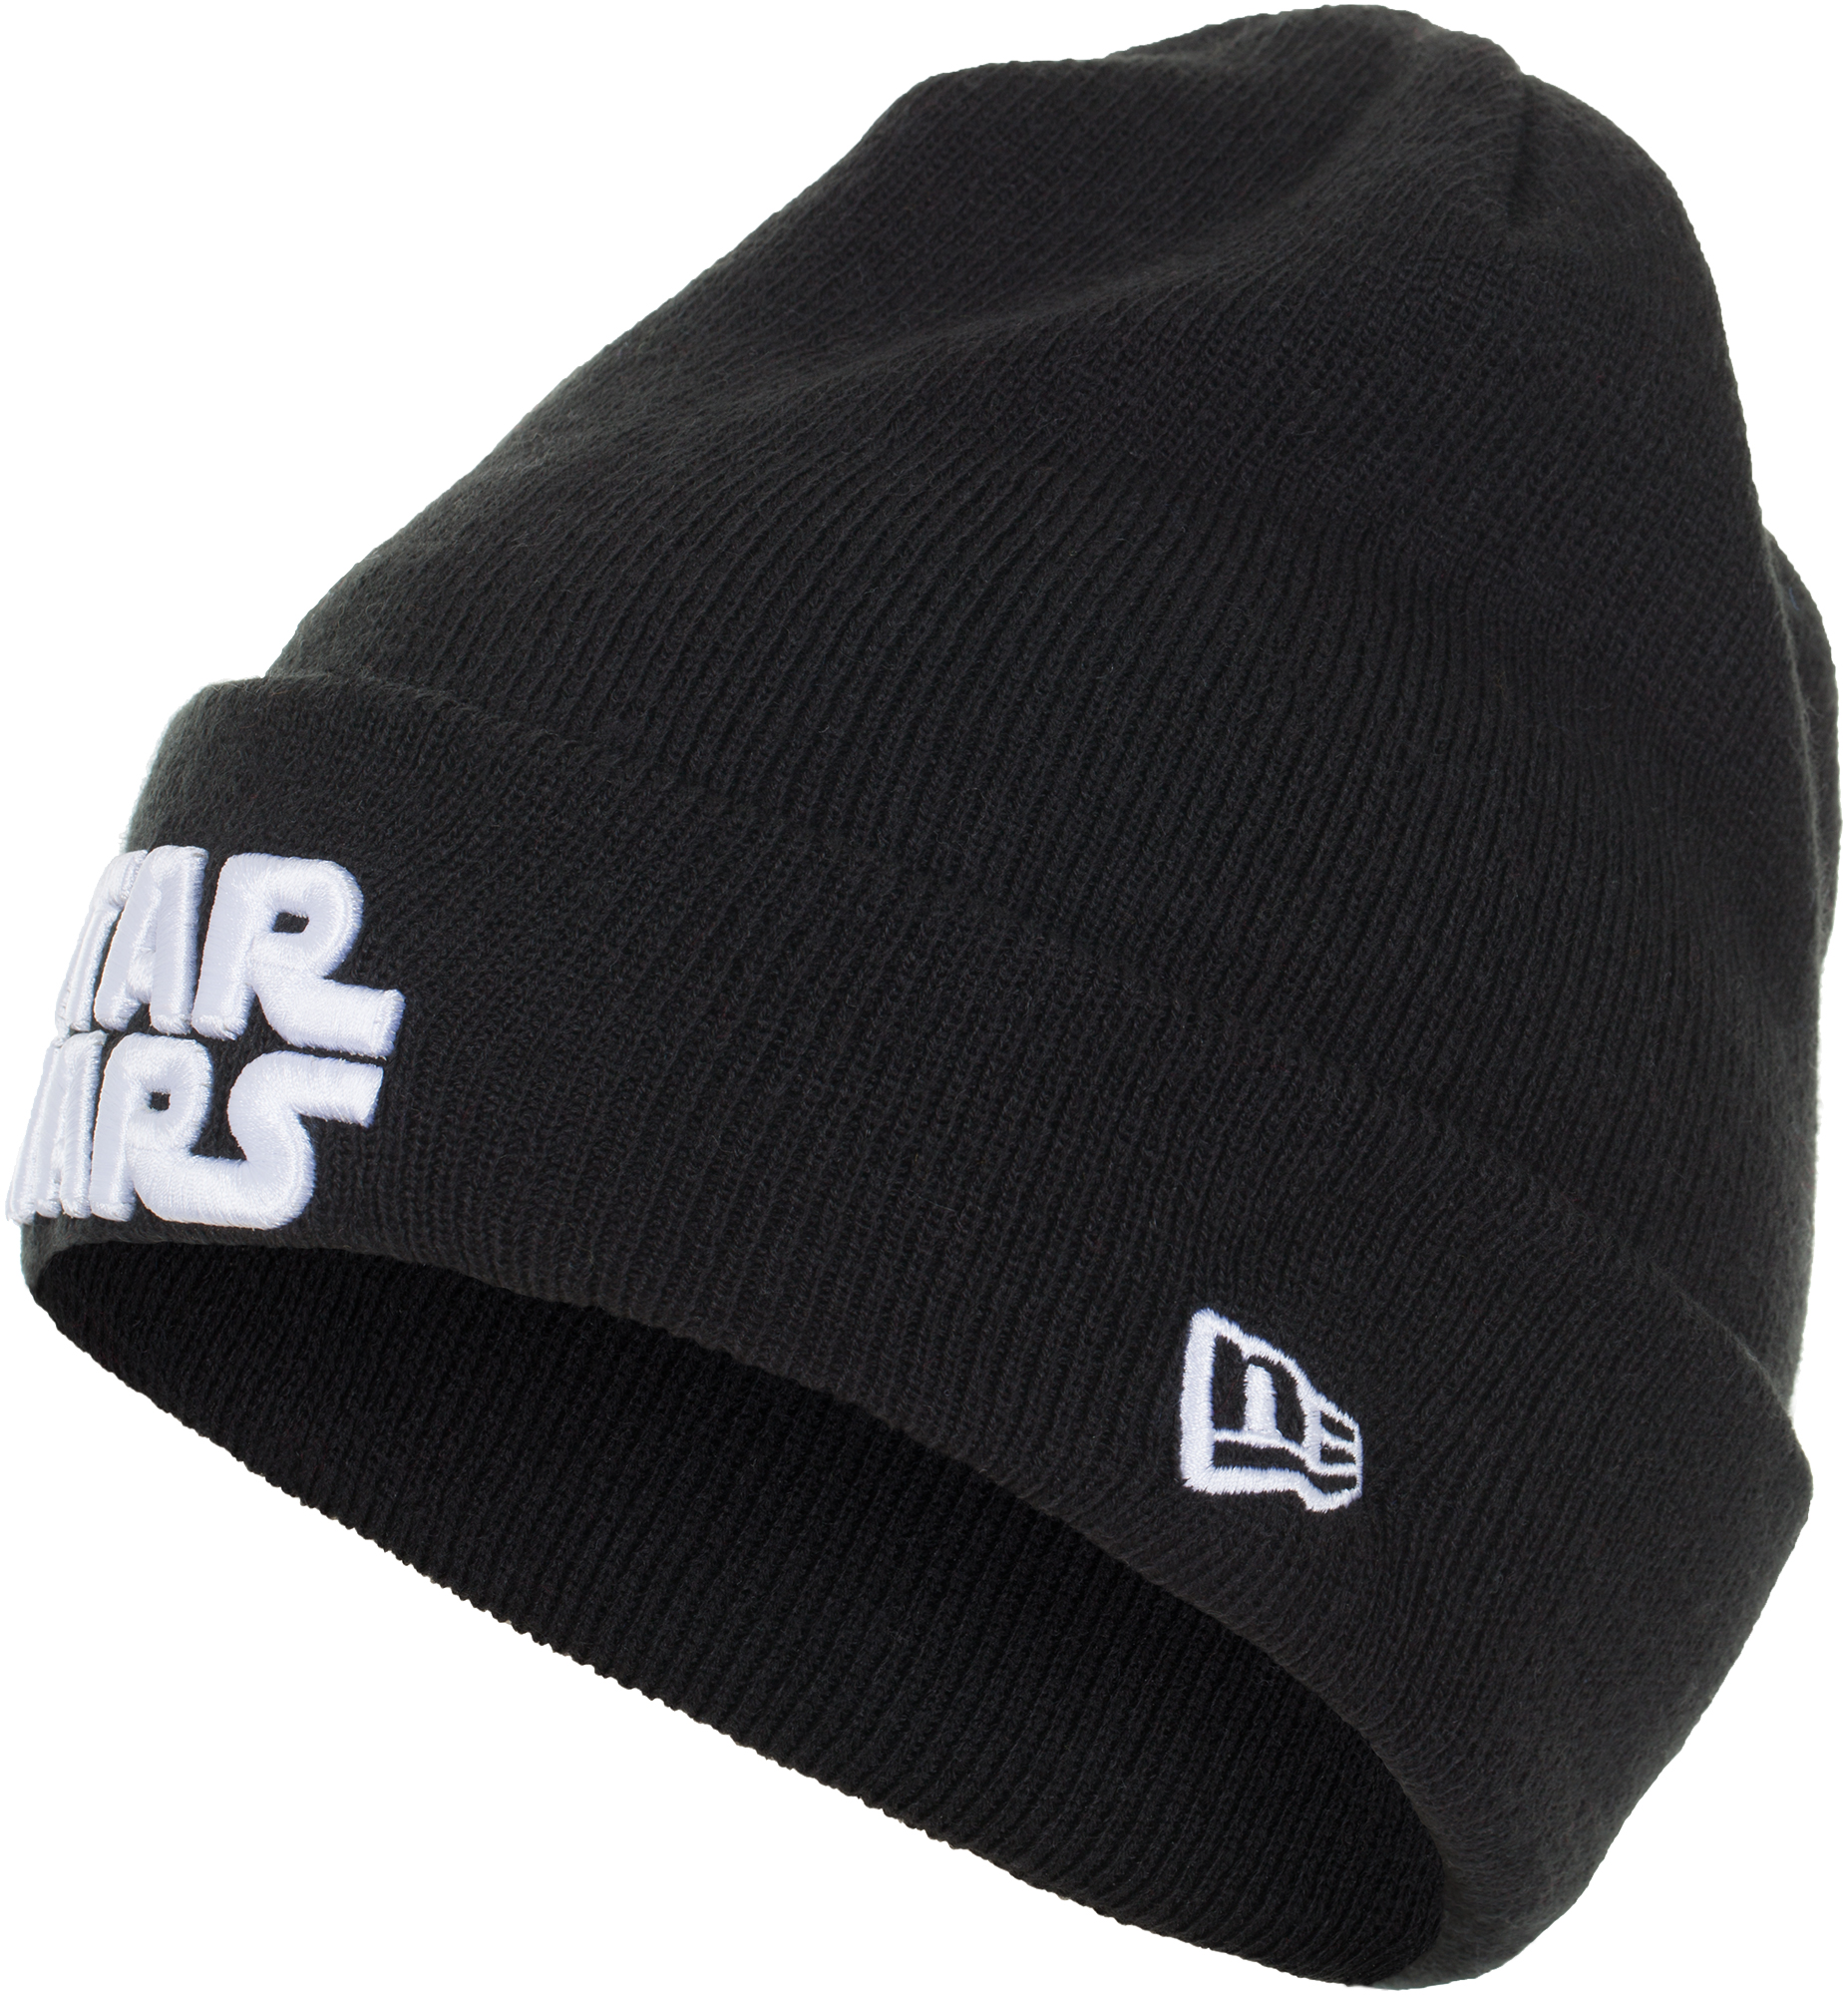 New Era Шапка New Era Lic 850 Character Knit цена